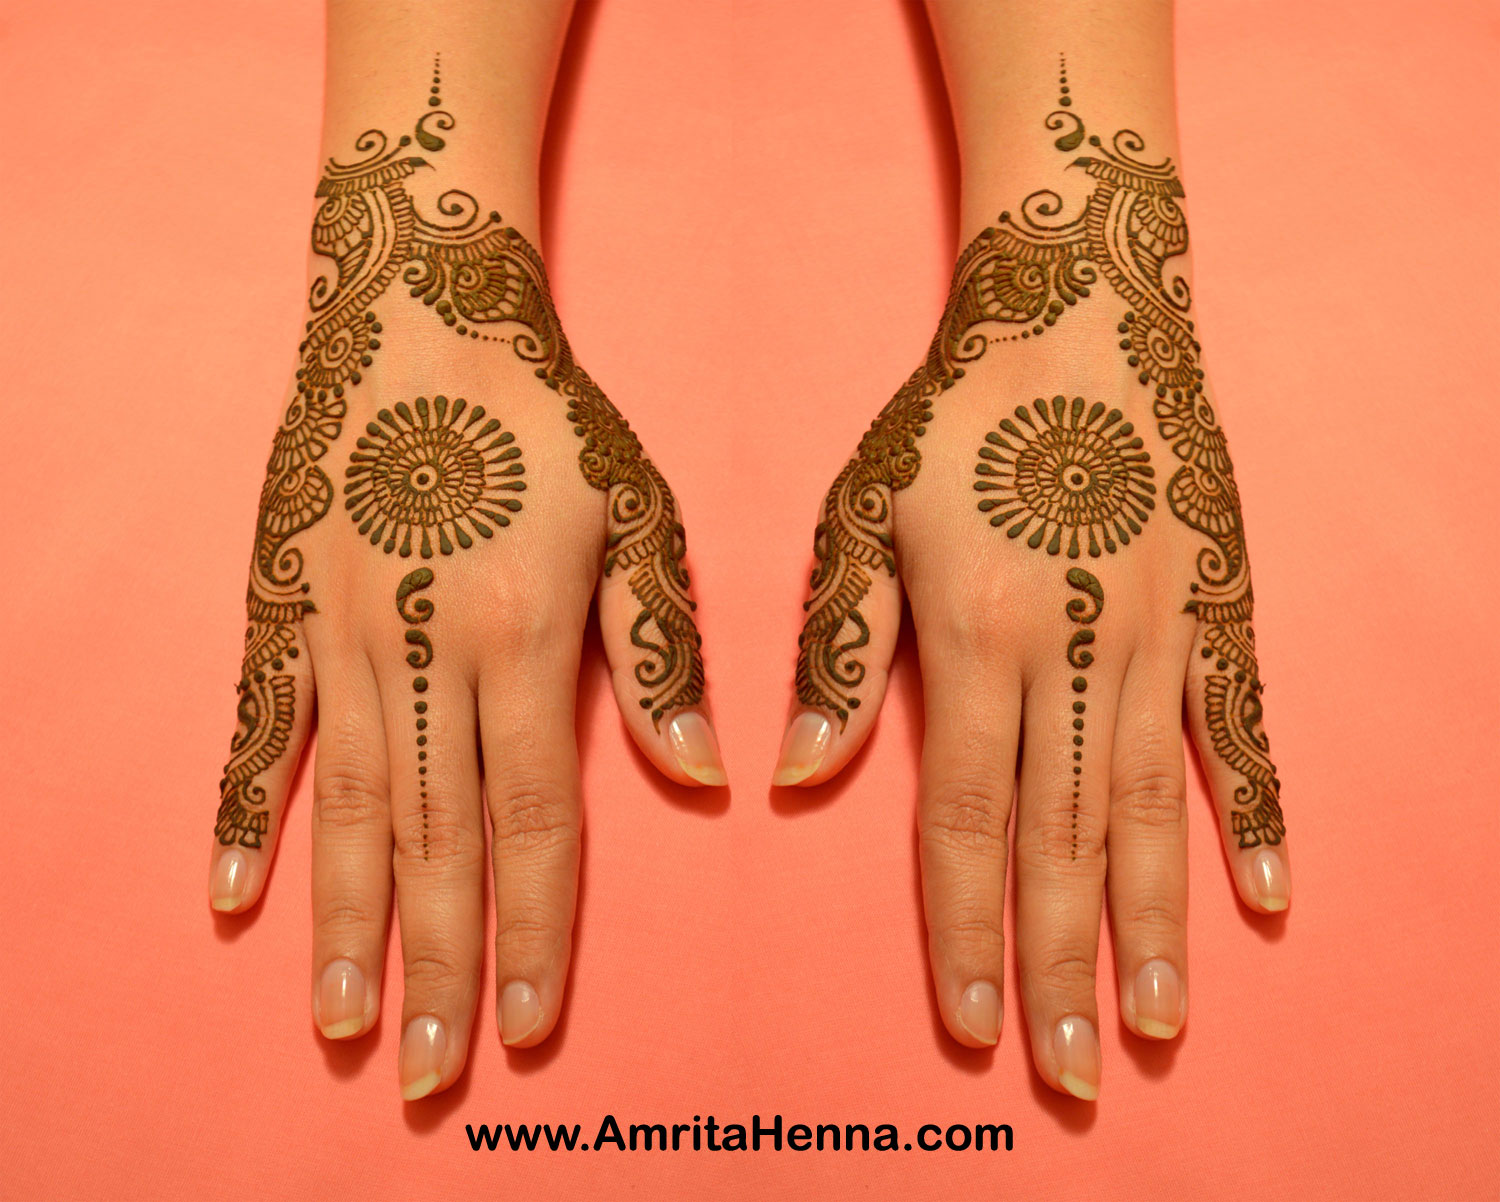 Henna Tattoo Designs For Diwali: TOP 10 LATEST UNIQUE HENNA DESIGNS FOR DIWALI